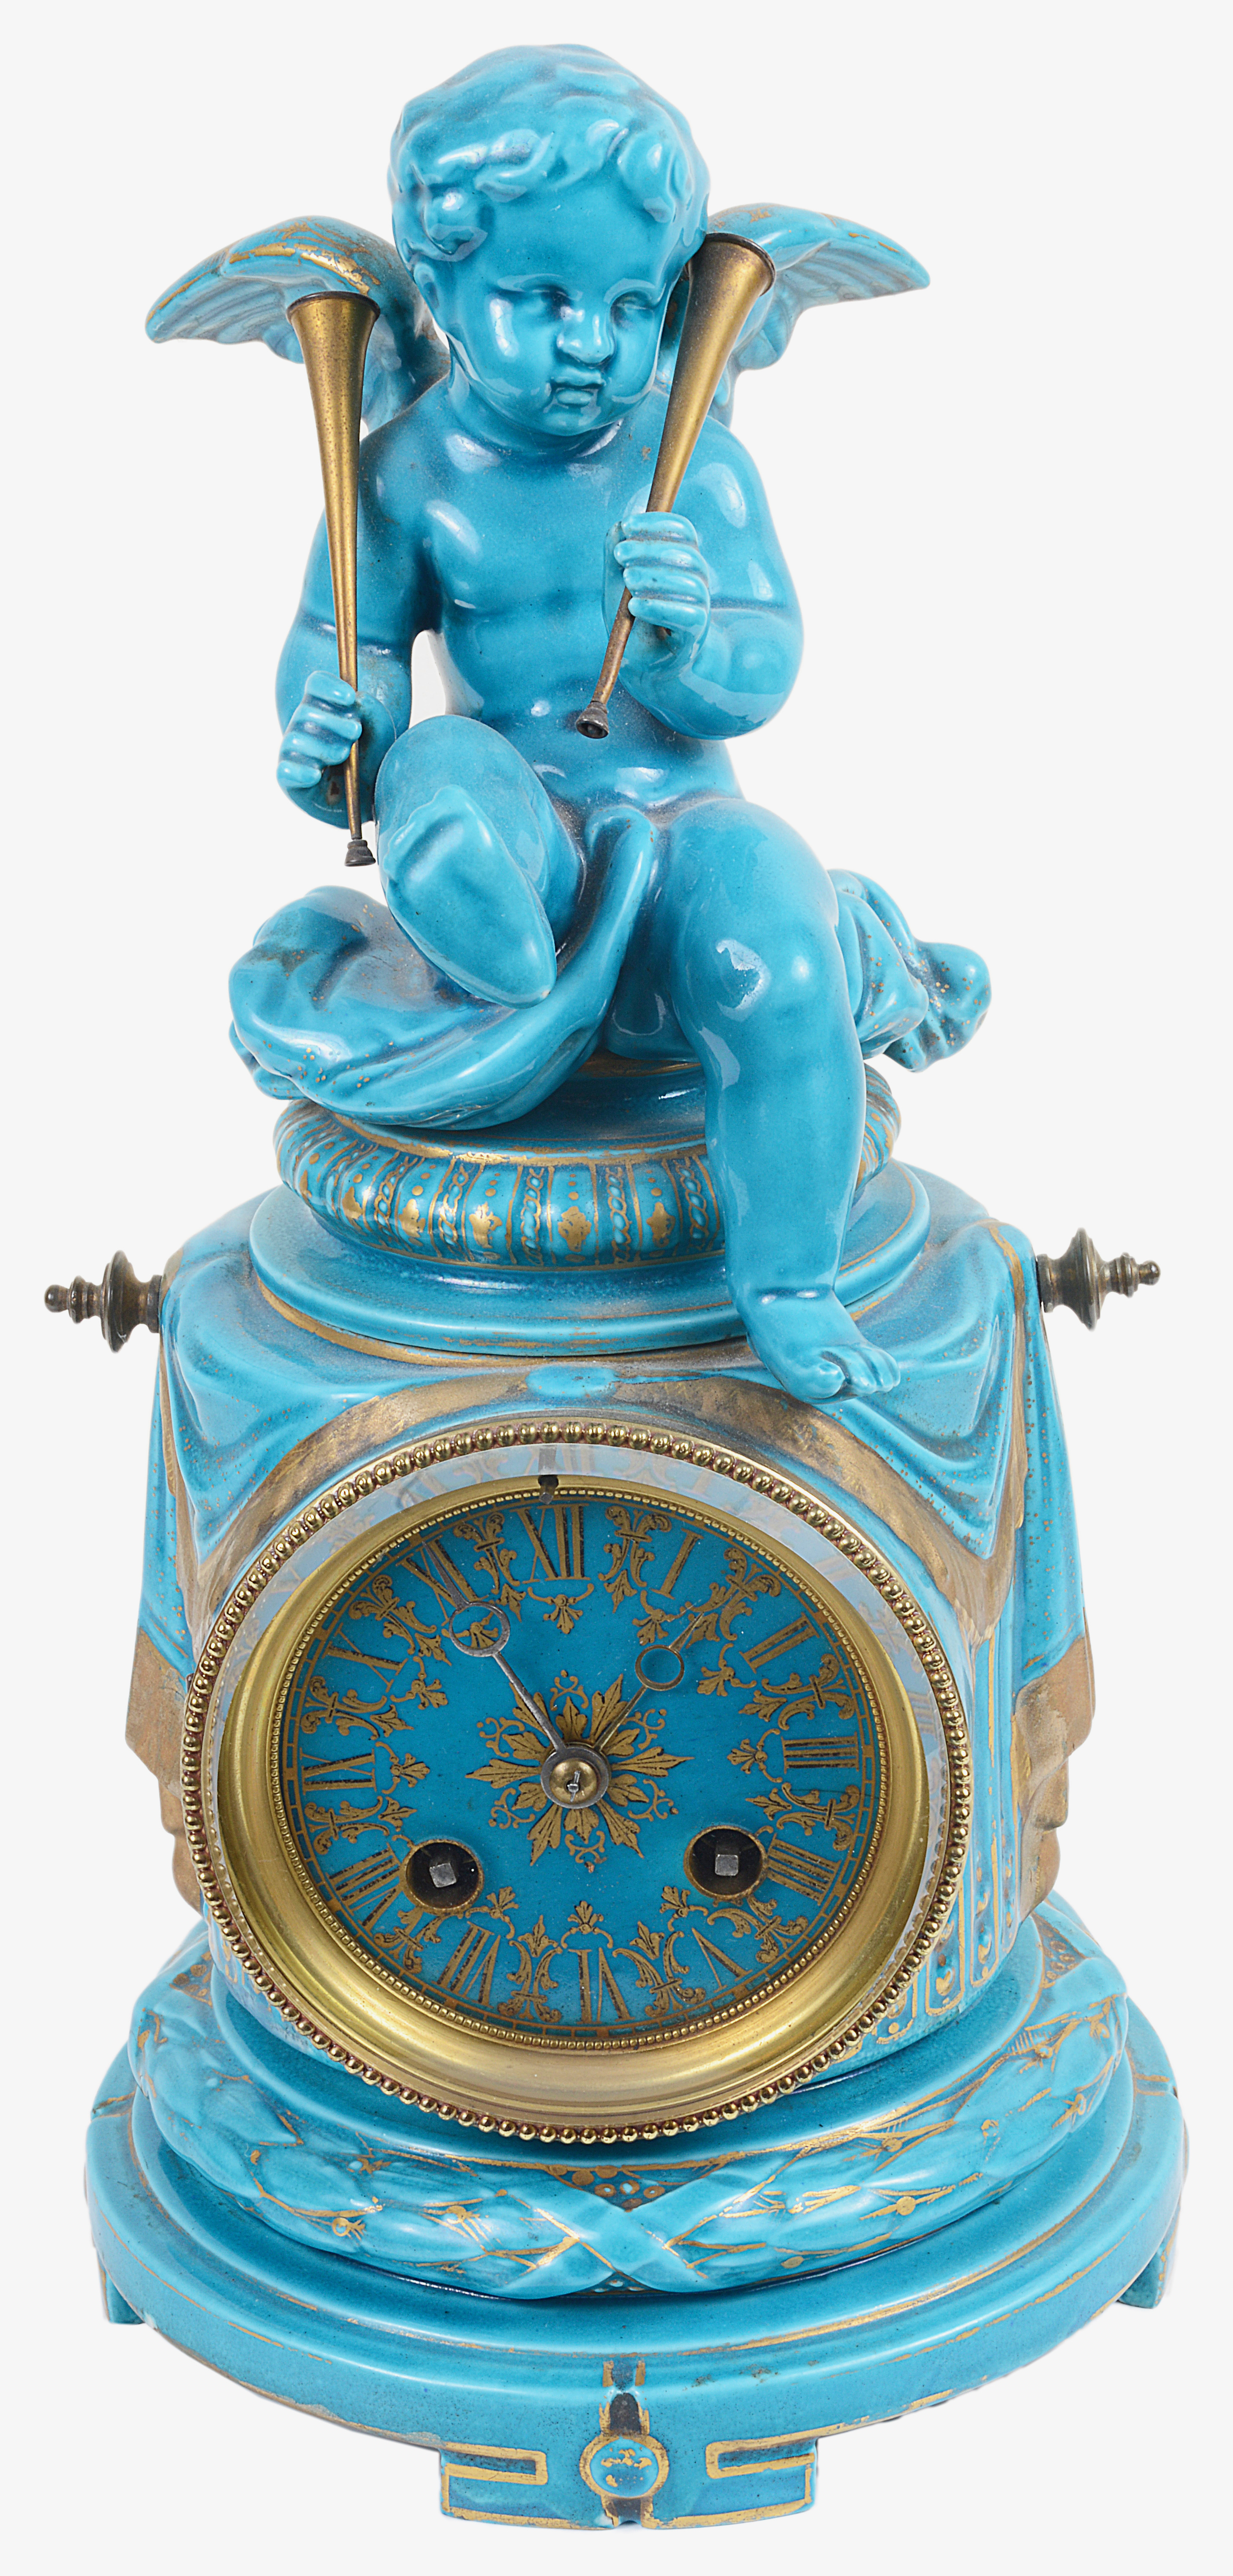 Lot 34 - A French porcelain turquoise glazed clock, late 19th century